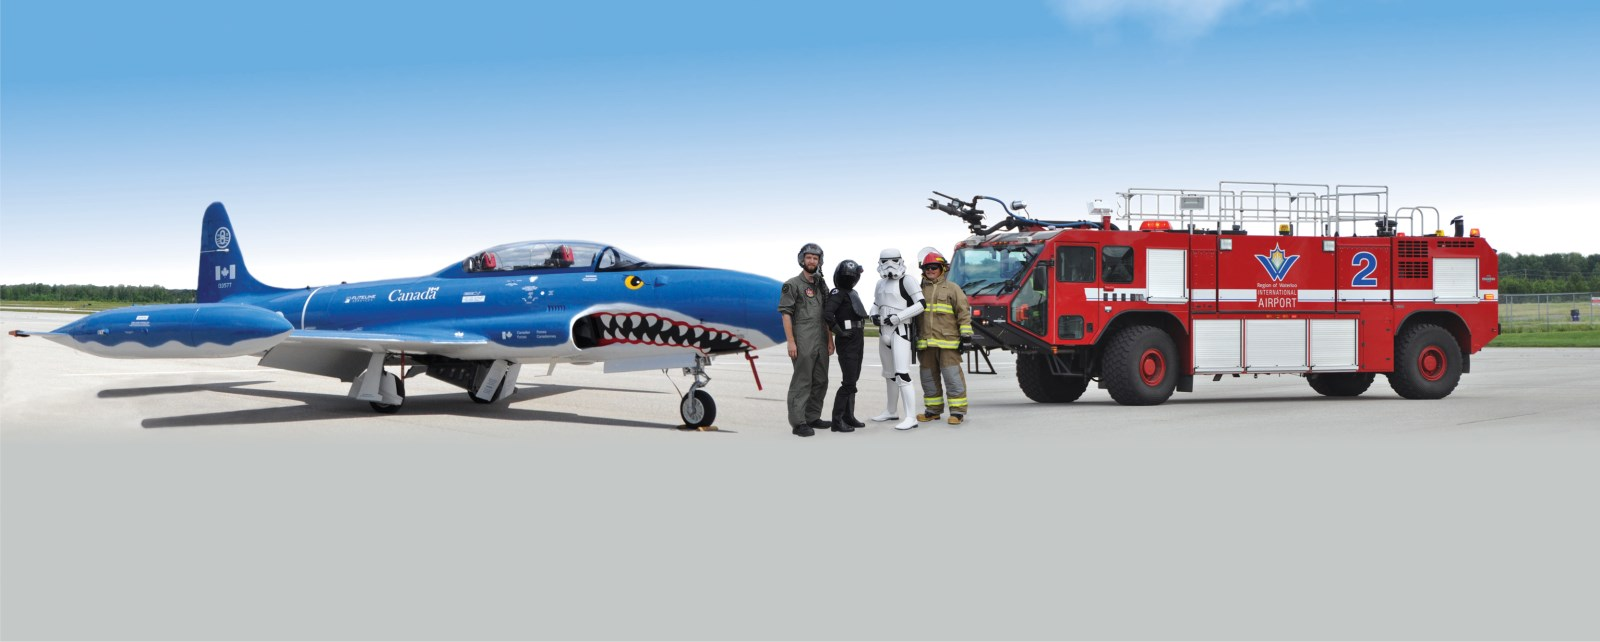 Link to more information on Aviation Fun Day 2018